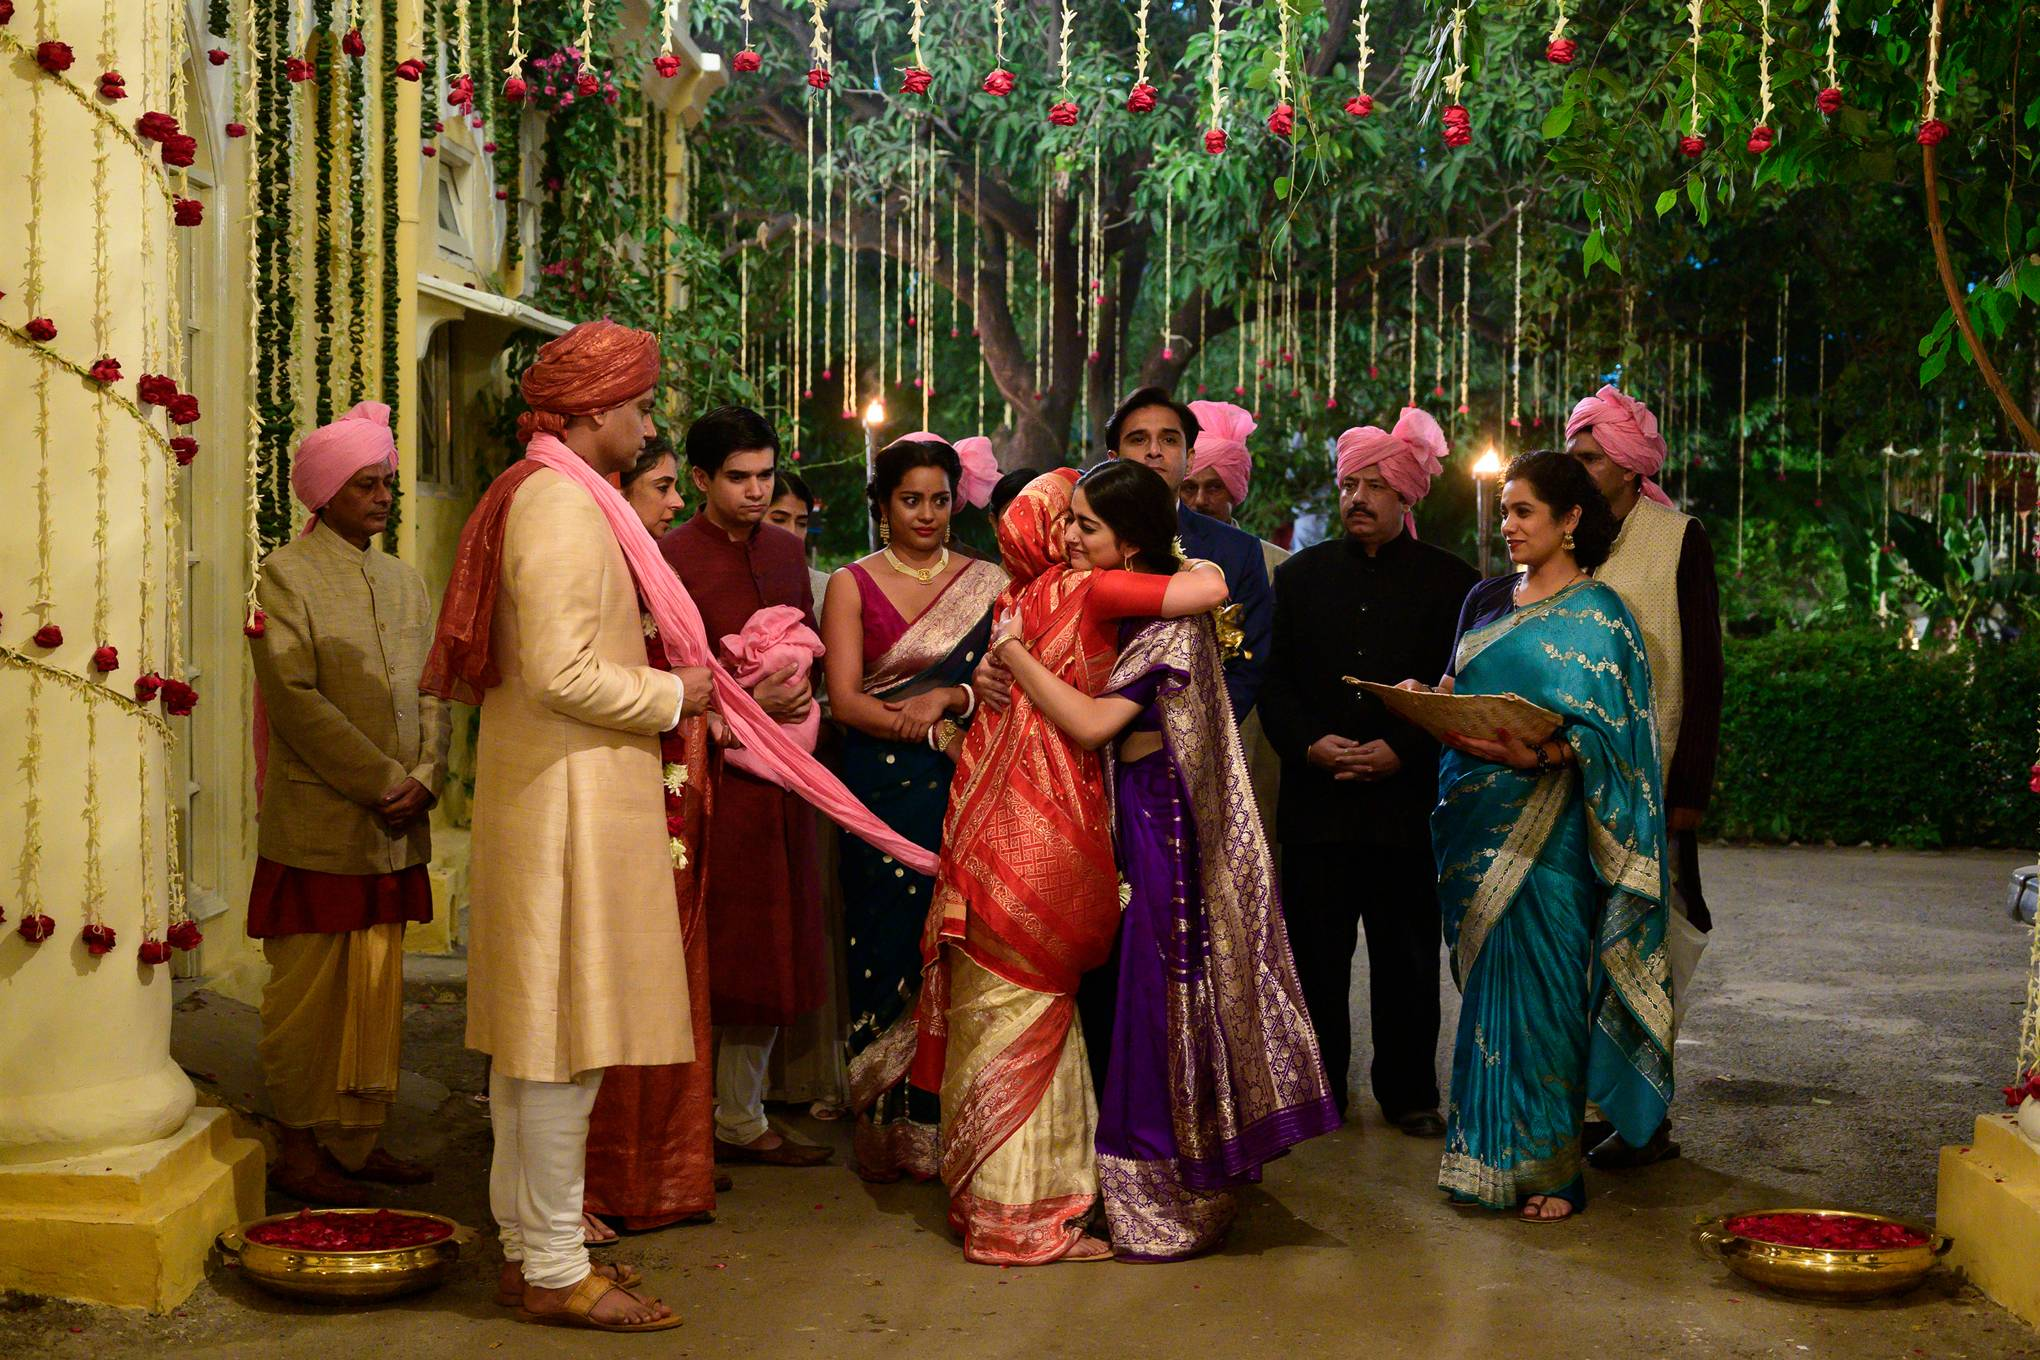 The image shows a scene from A Suitable Boy where a lot of people are hugging to bid farewell to a bride in her wedding.